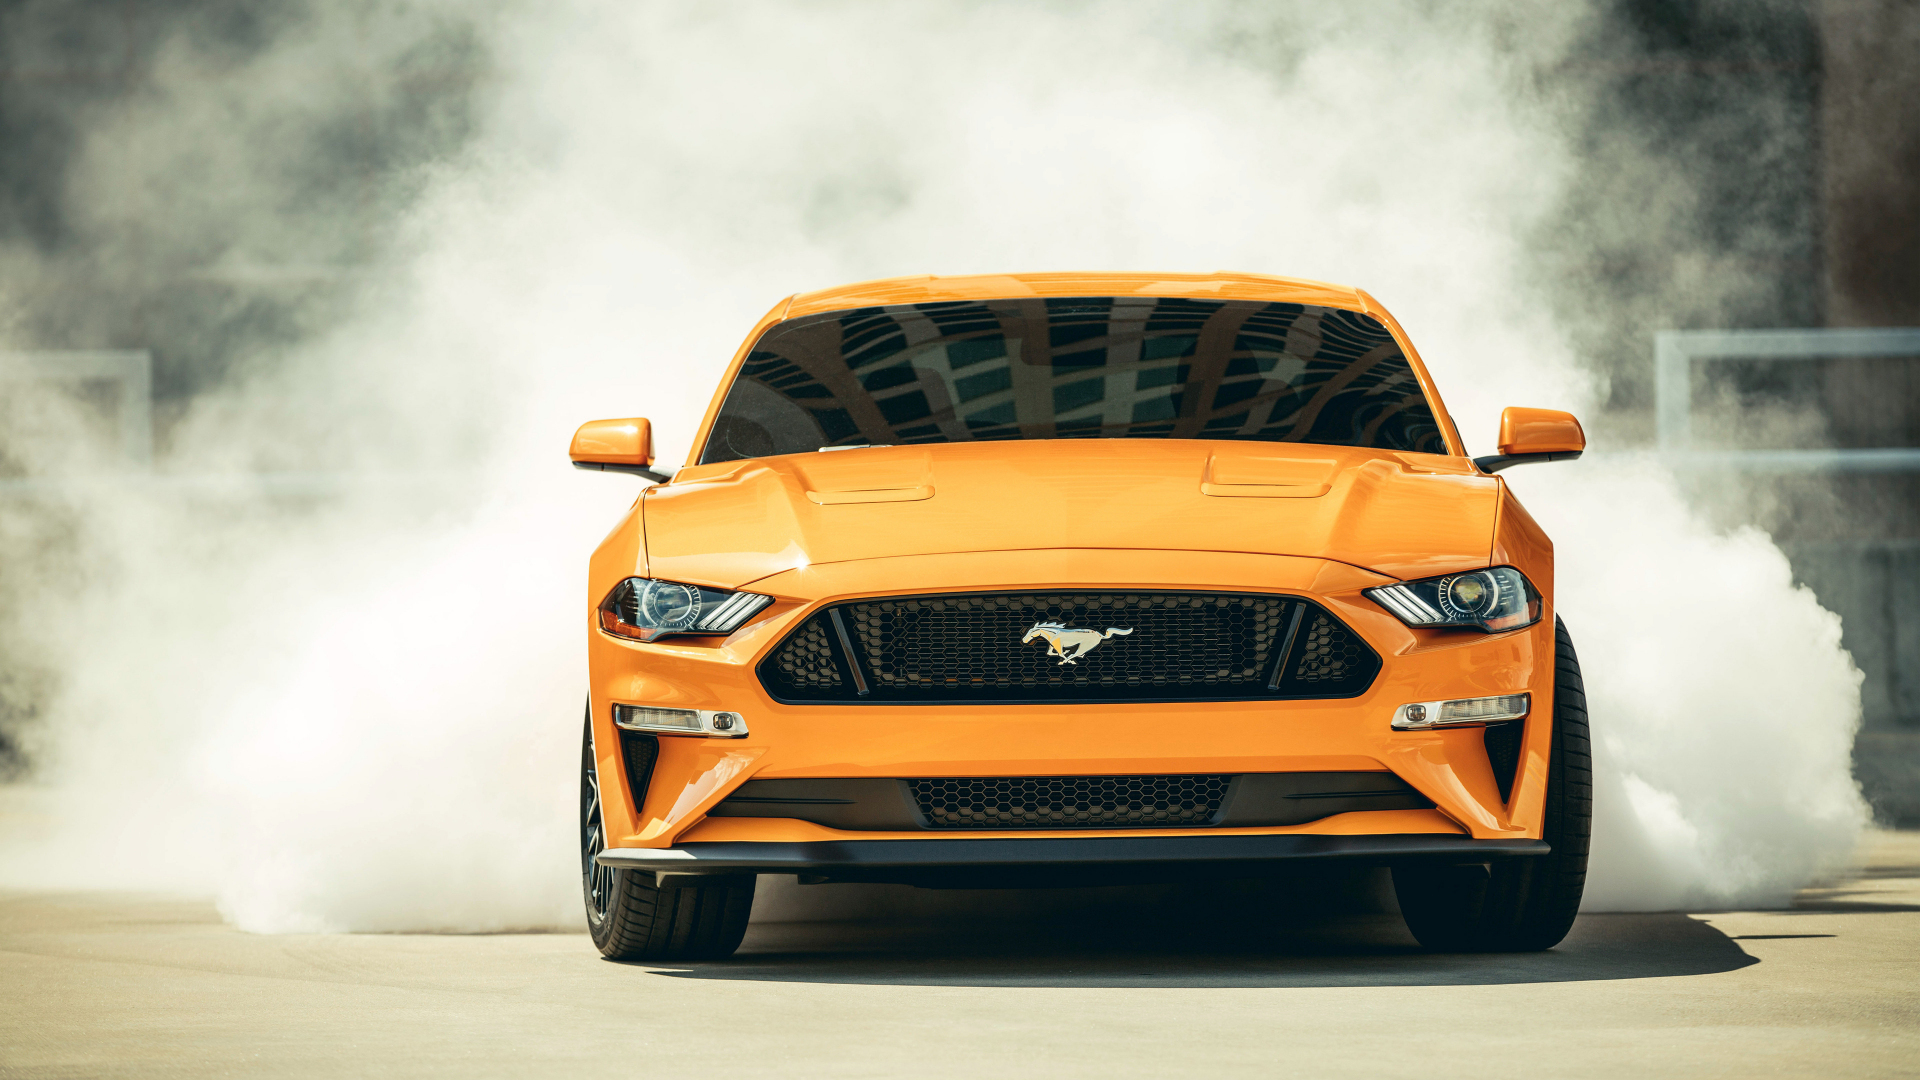 Download 1920x1080 Wallpaper 2018 Ford Mustang Gt